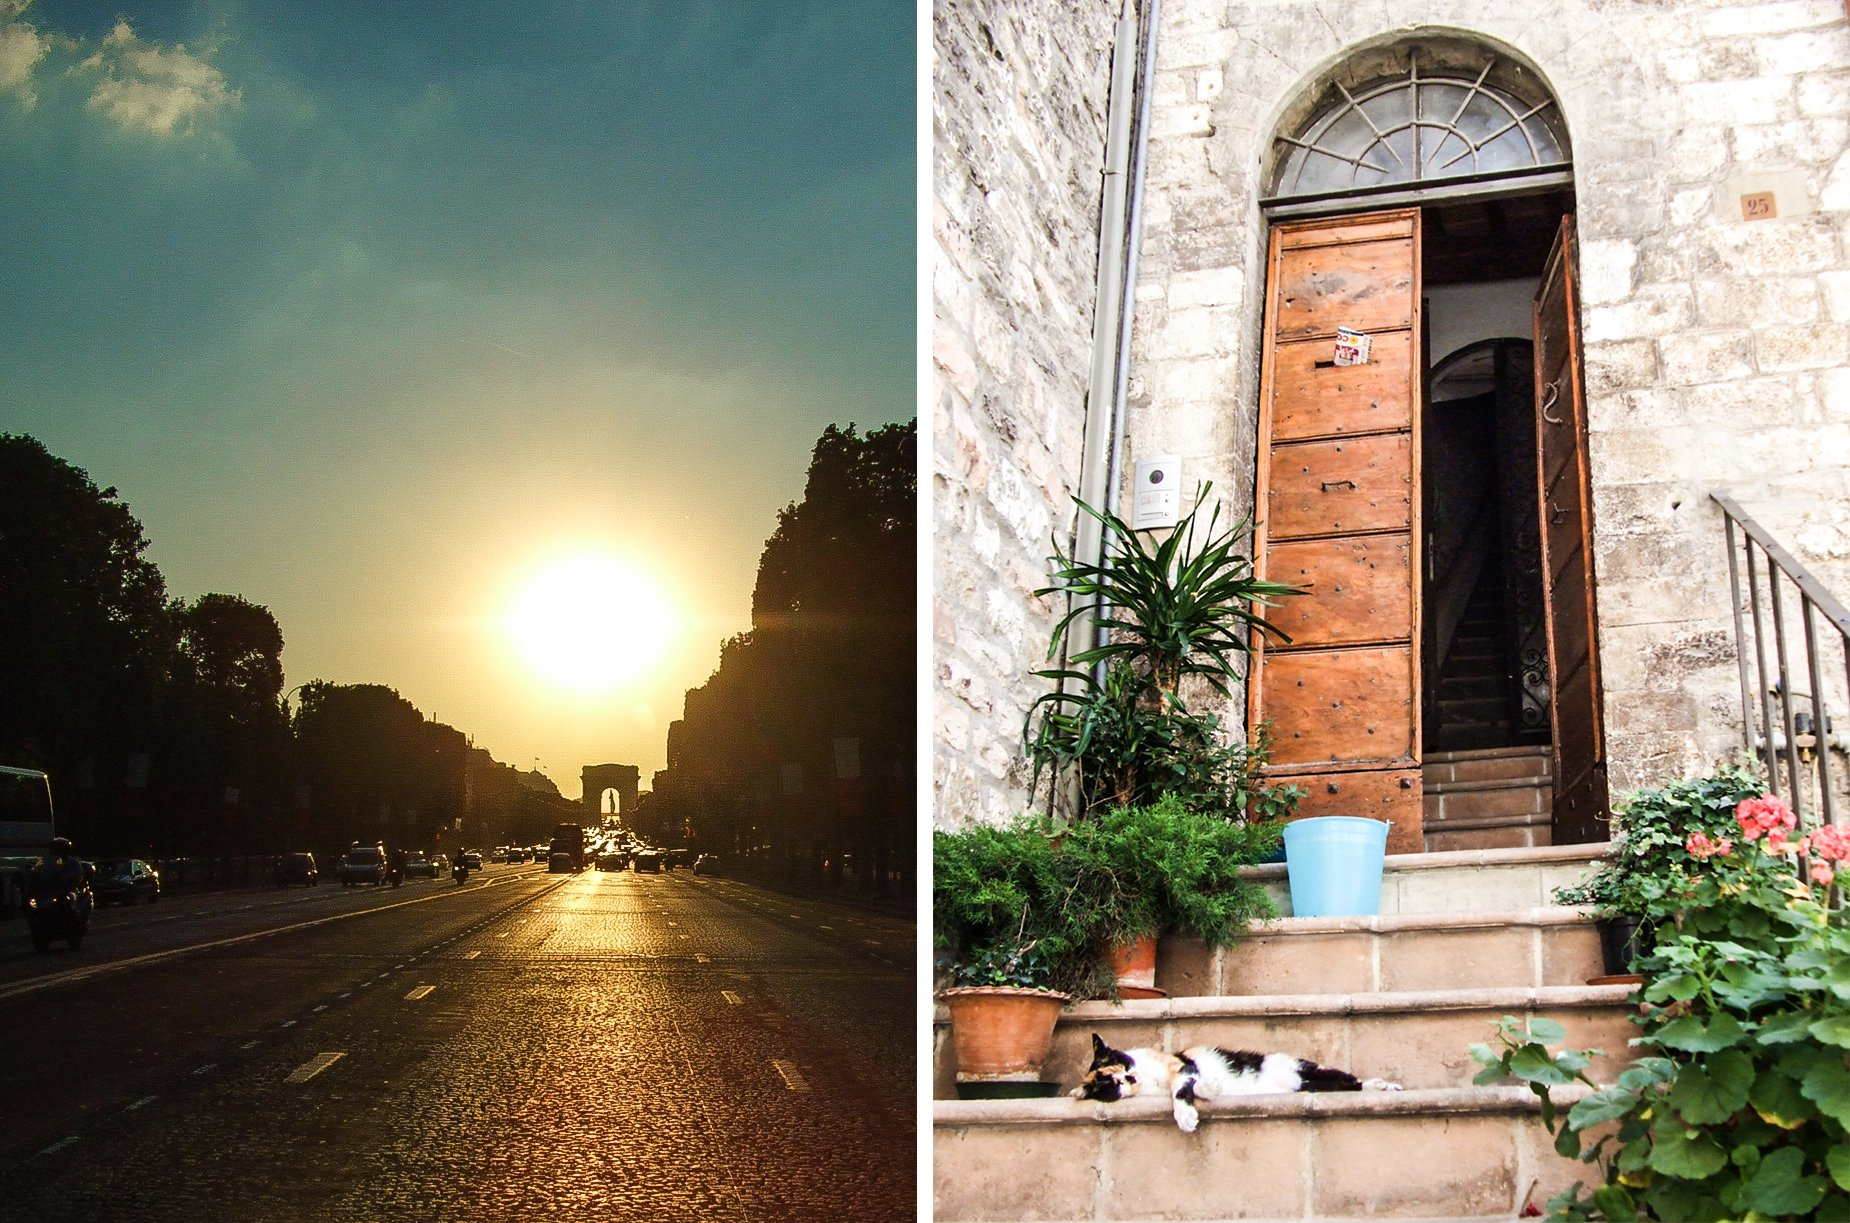 Two photos; Left is looking up the street towards the Arc de Triomphe. Right is a doorstep in Italy with a calico cat on the steps.